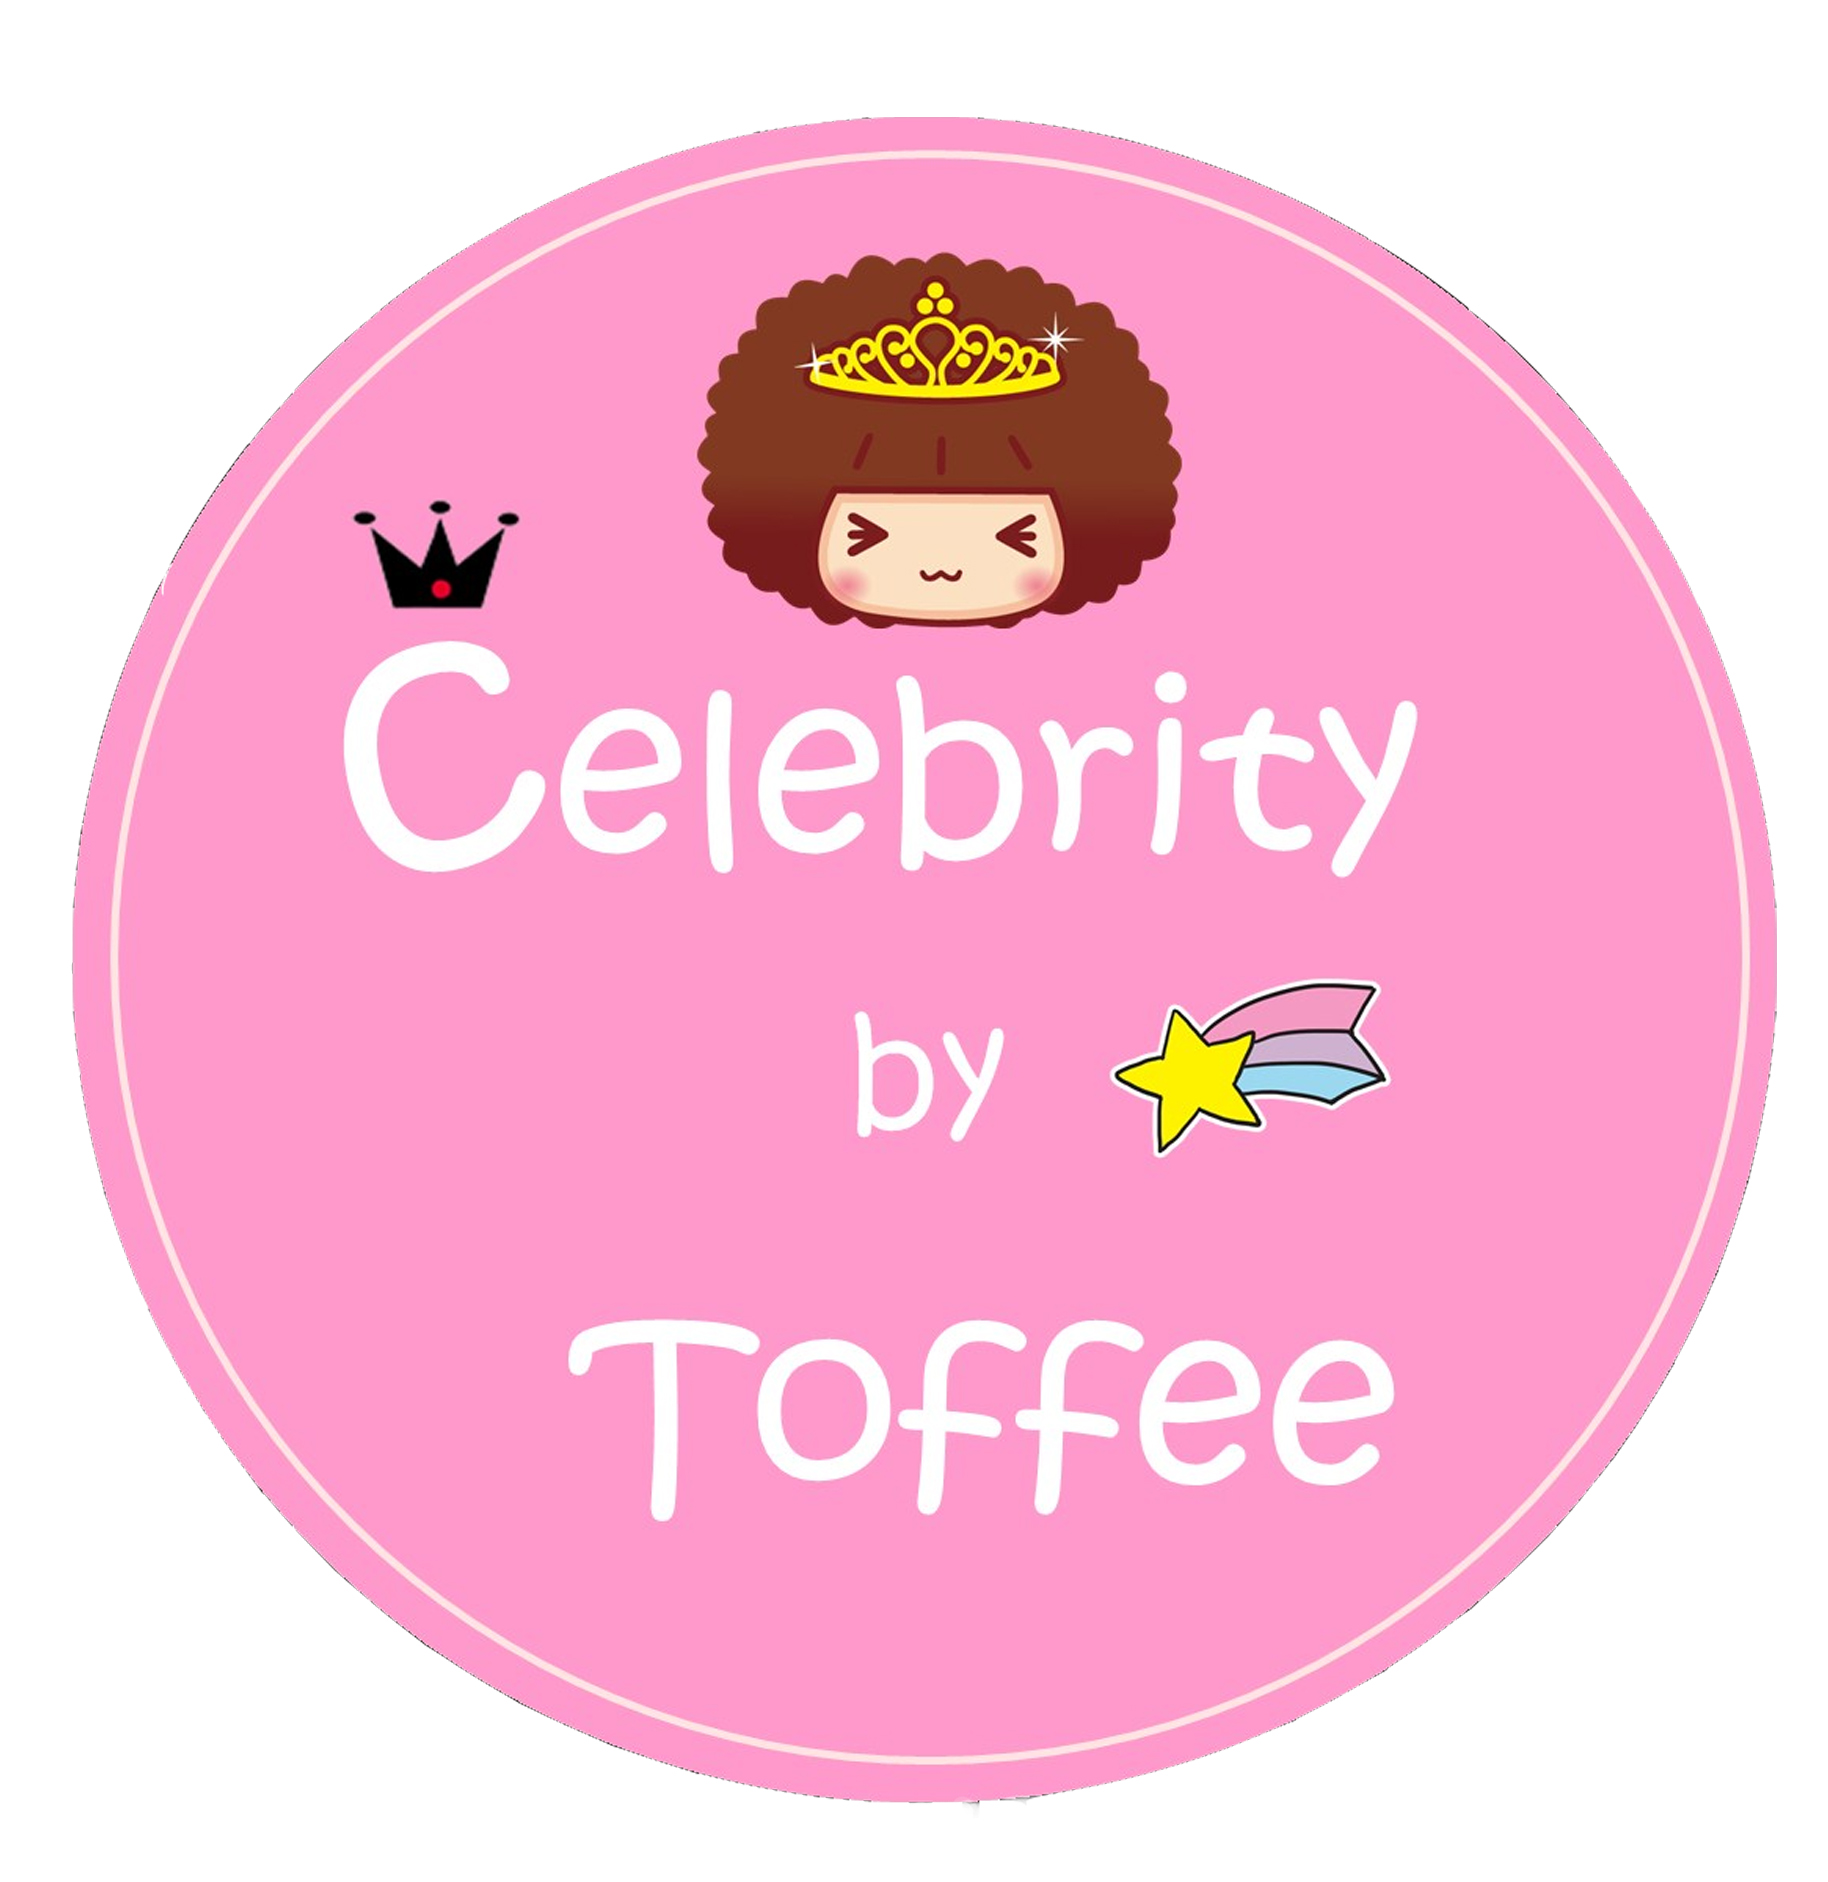 Celebrity_by Toffee